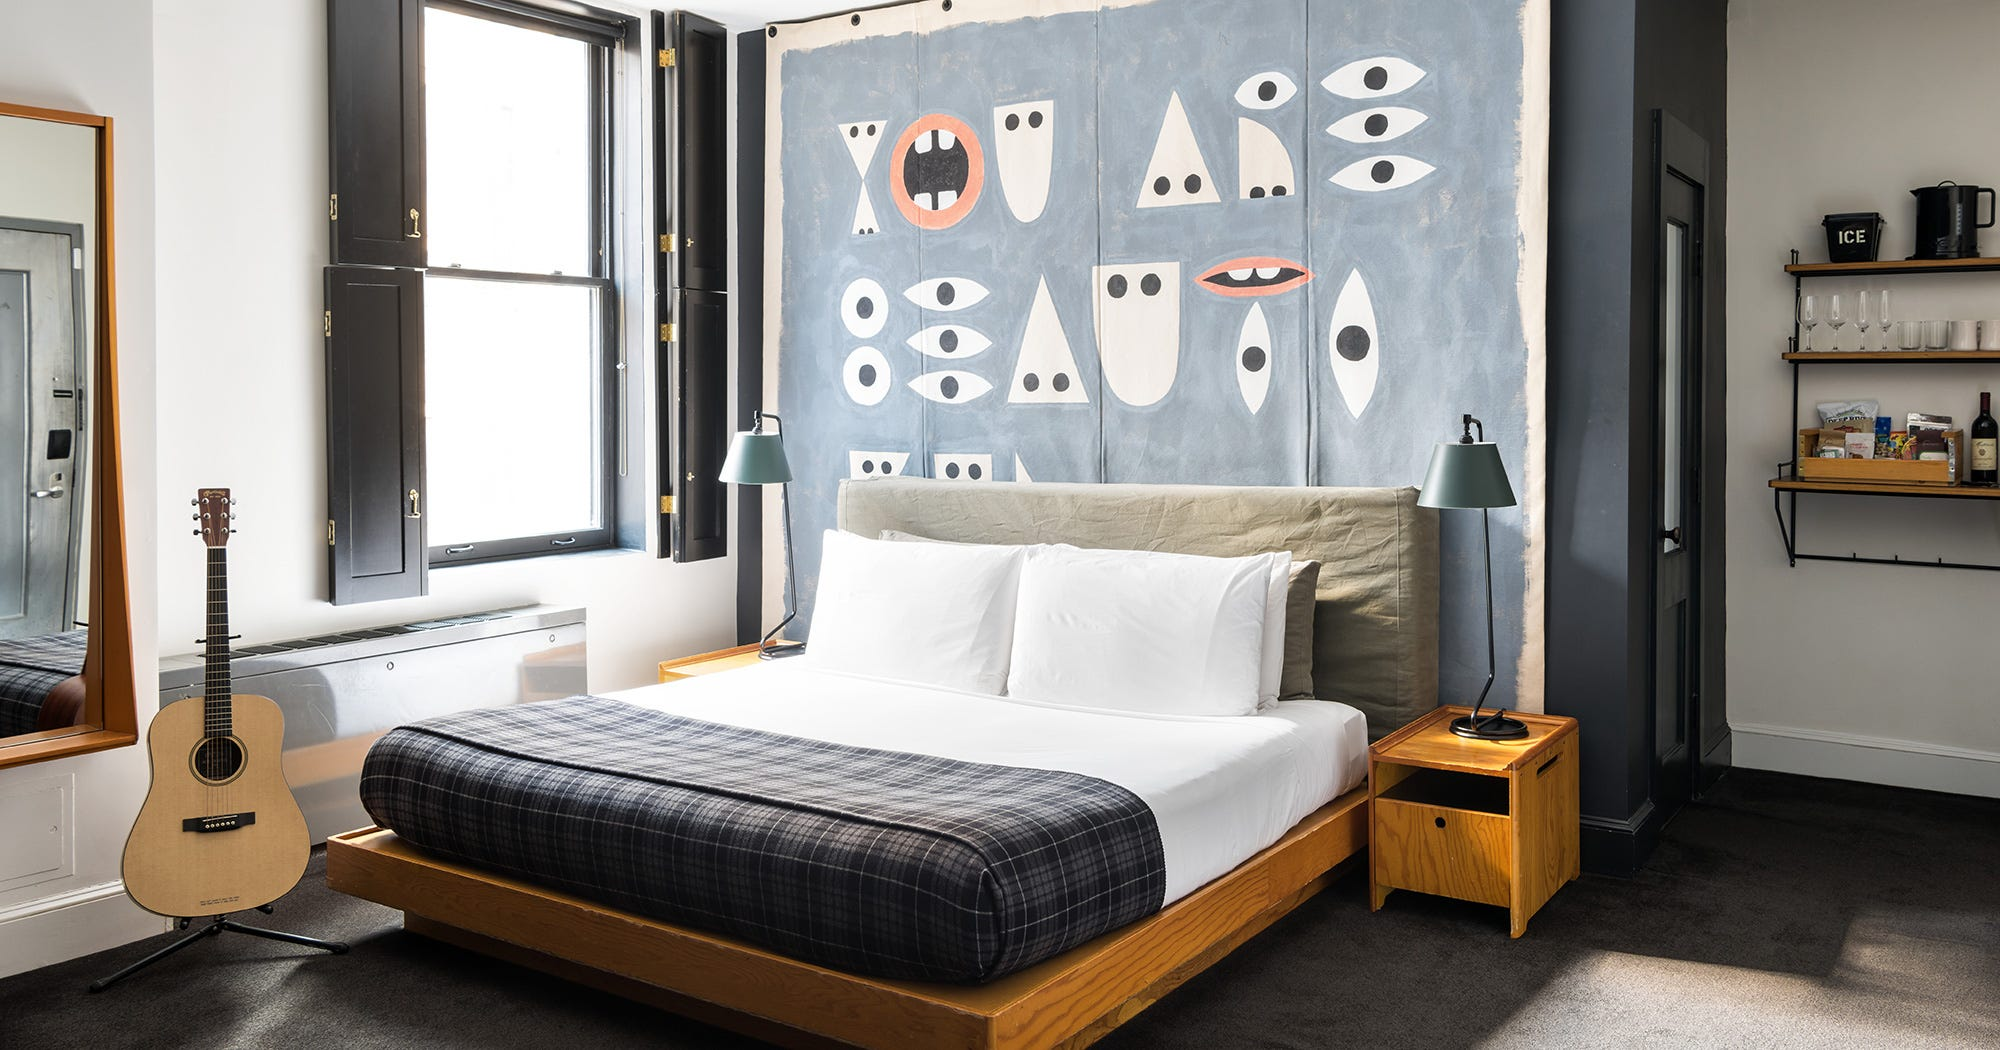 The Coolest NYC Hotels To Stay At In 2018 — For Under $300